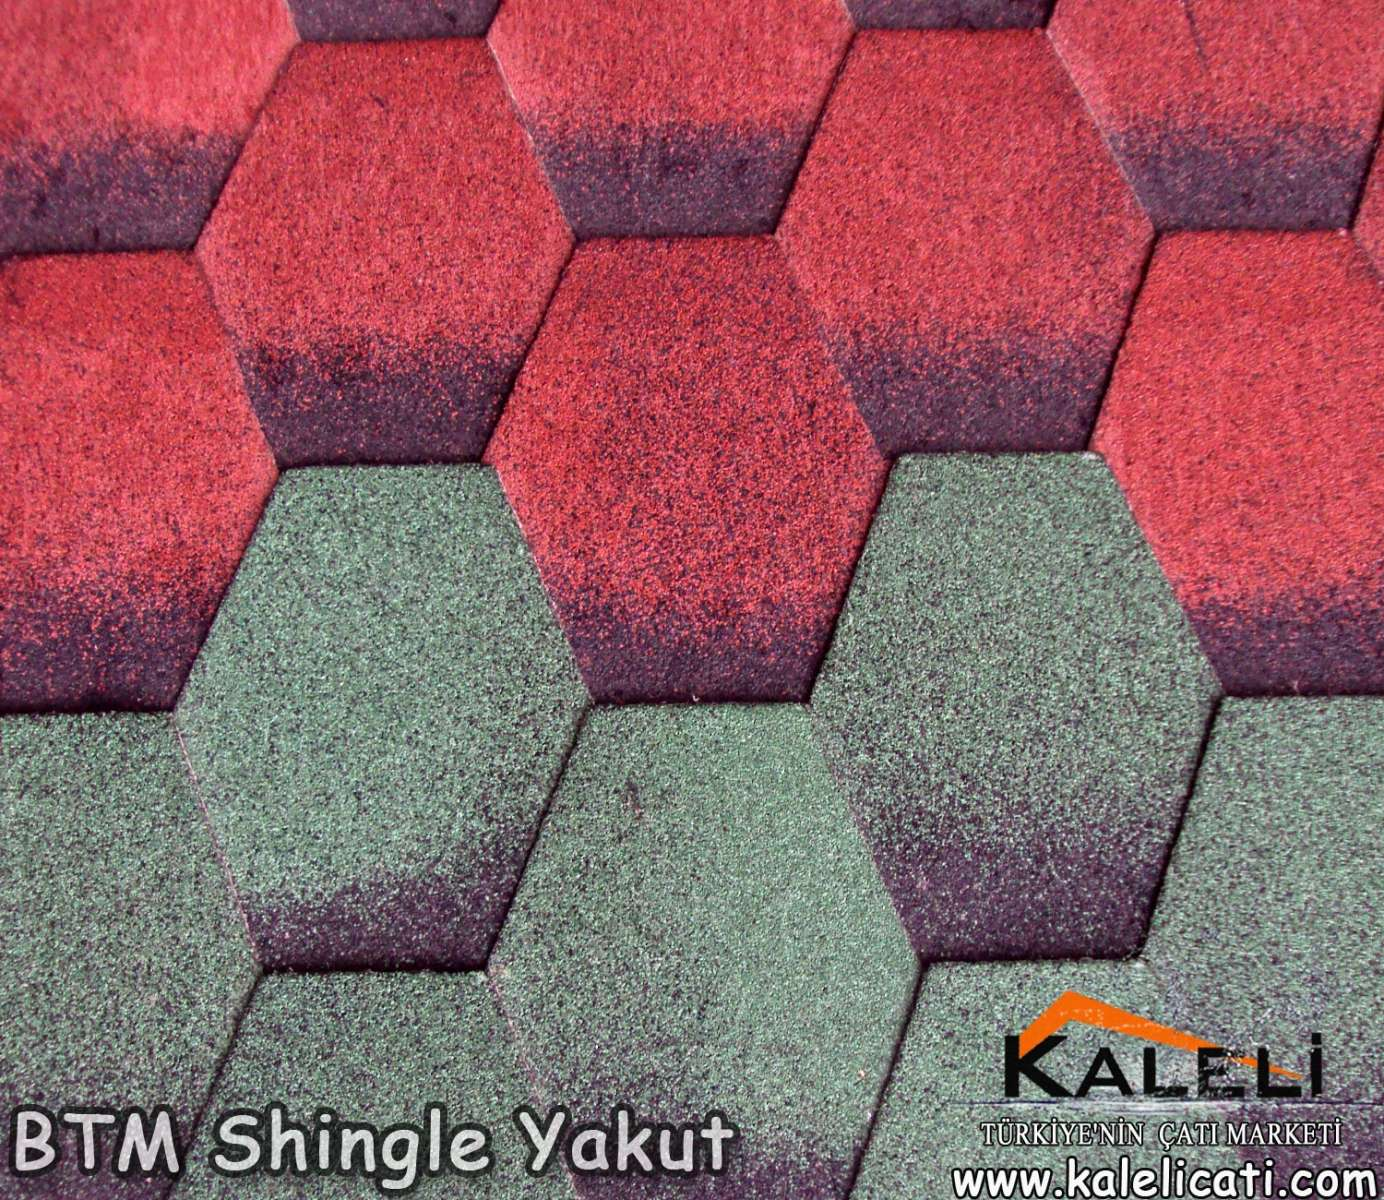 BTM Shingle Yakut (Altıgen) (2,94m2)